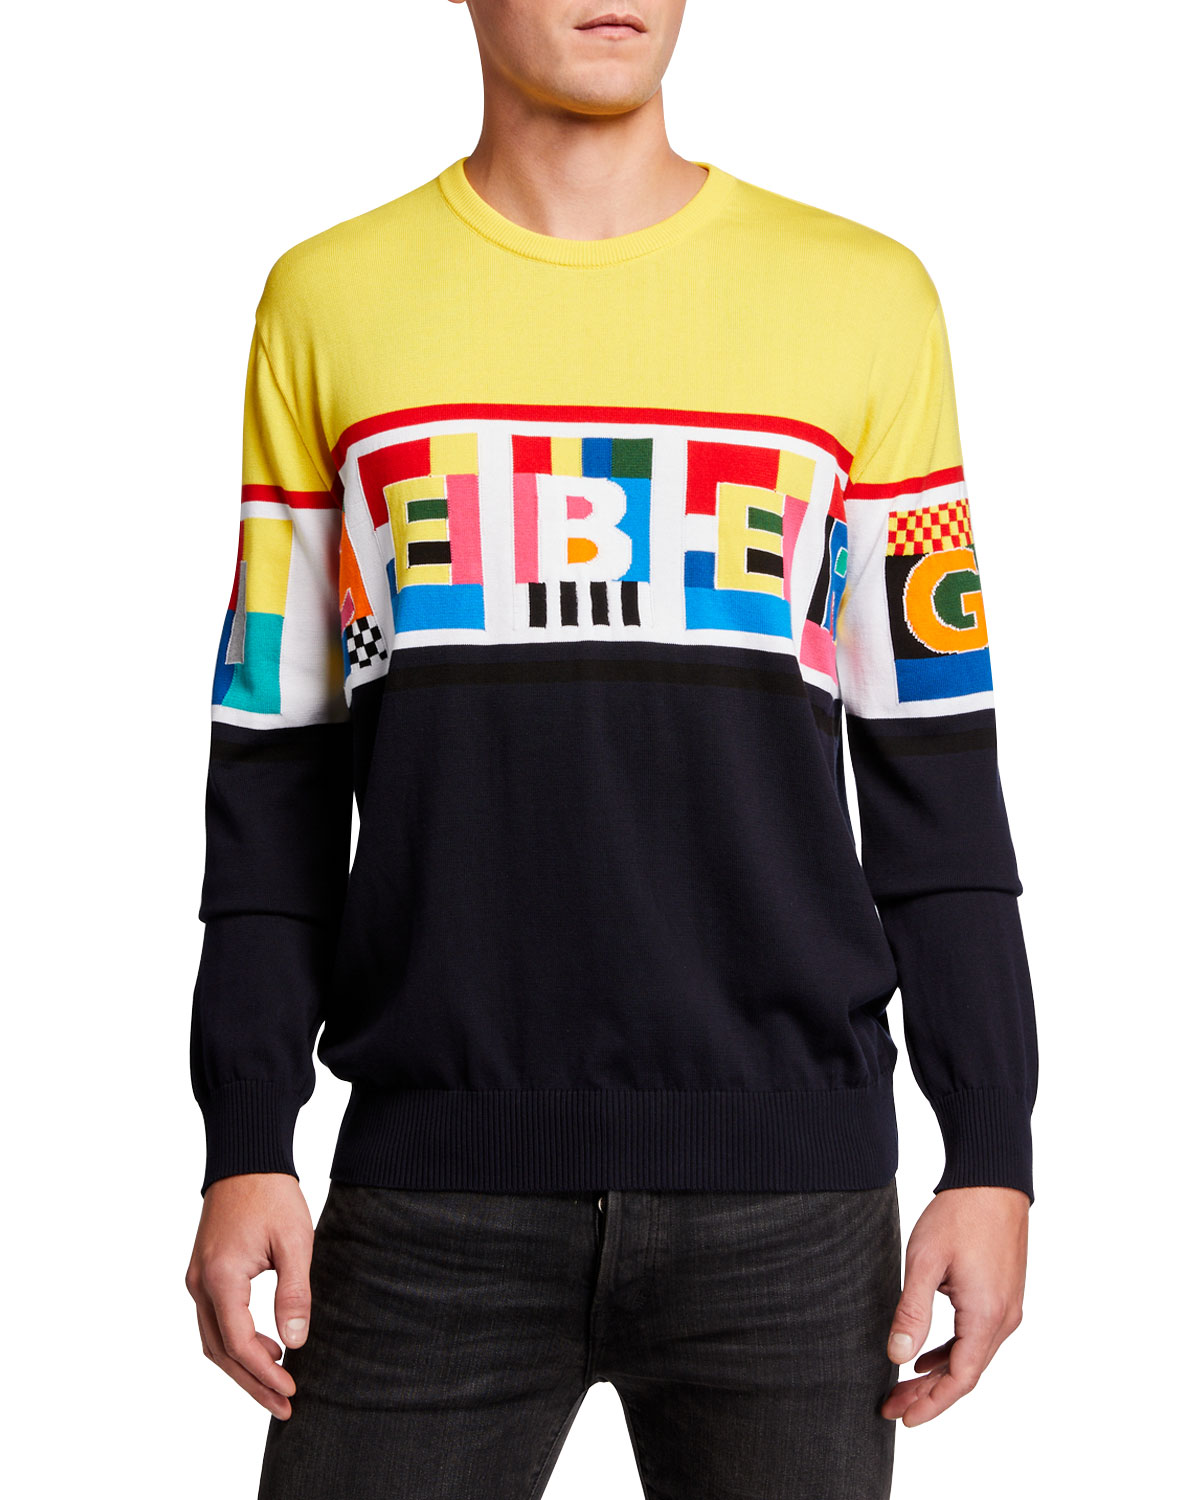 Iceberg Men's Graphic Logo Crewneck Sweater